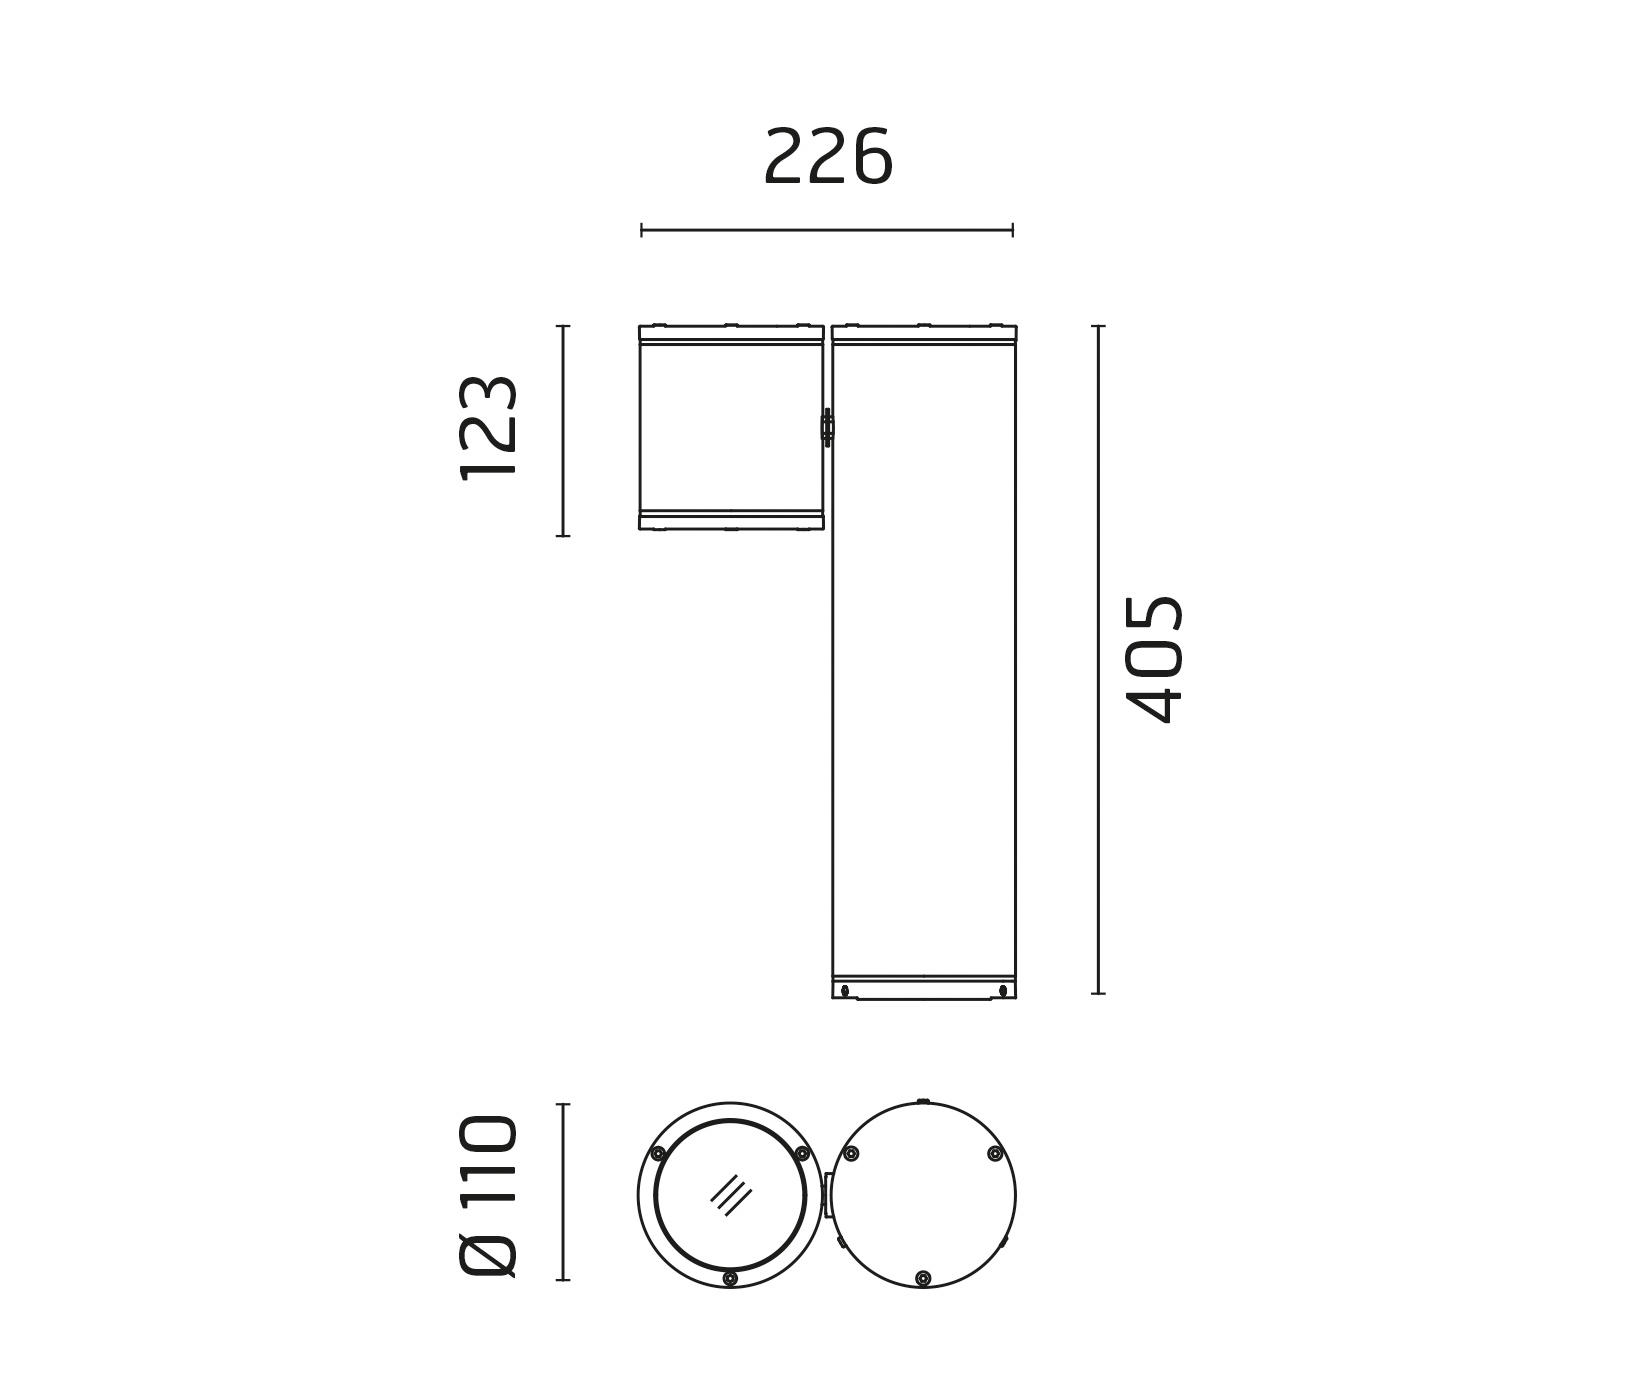 wiring diagram for wall lights 6w white light double cob led switch night universal ignition pan on post adjustable medium beam 40 flood by ares